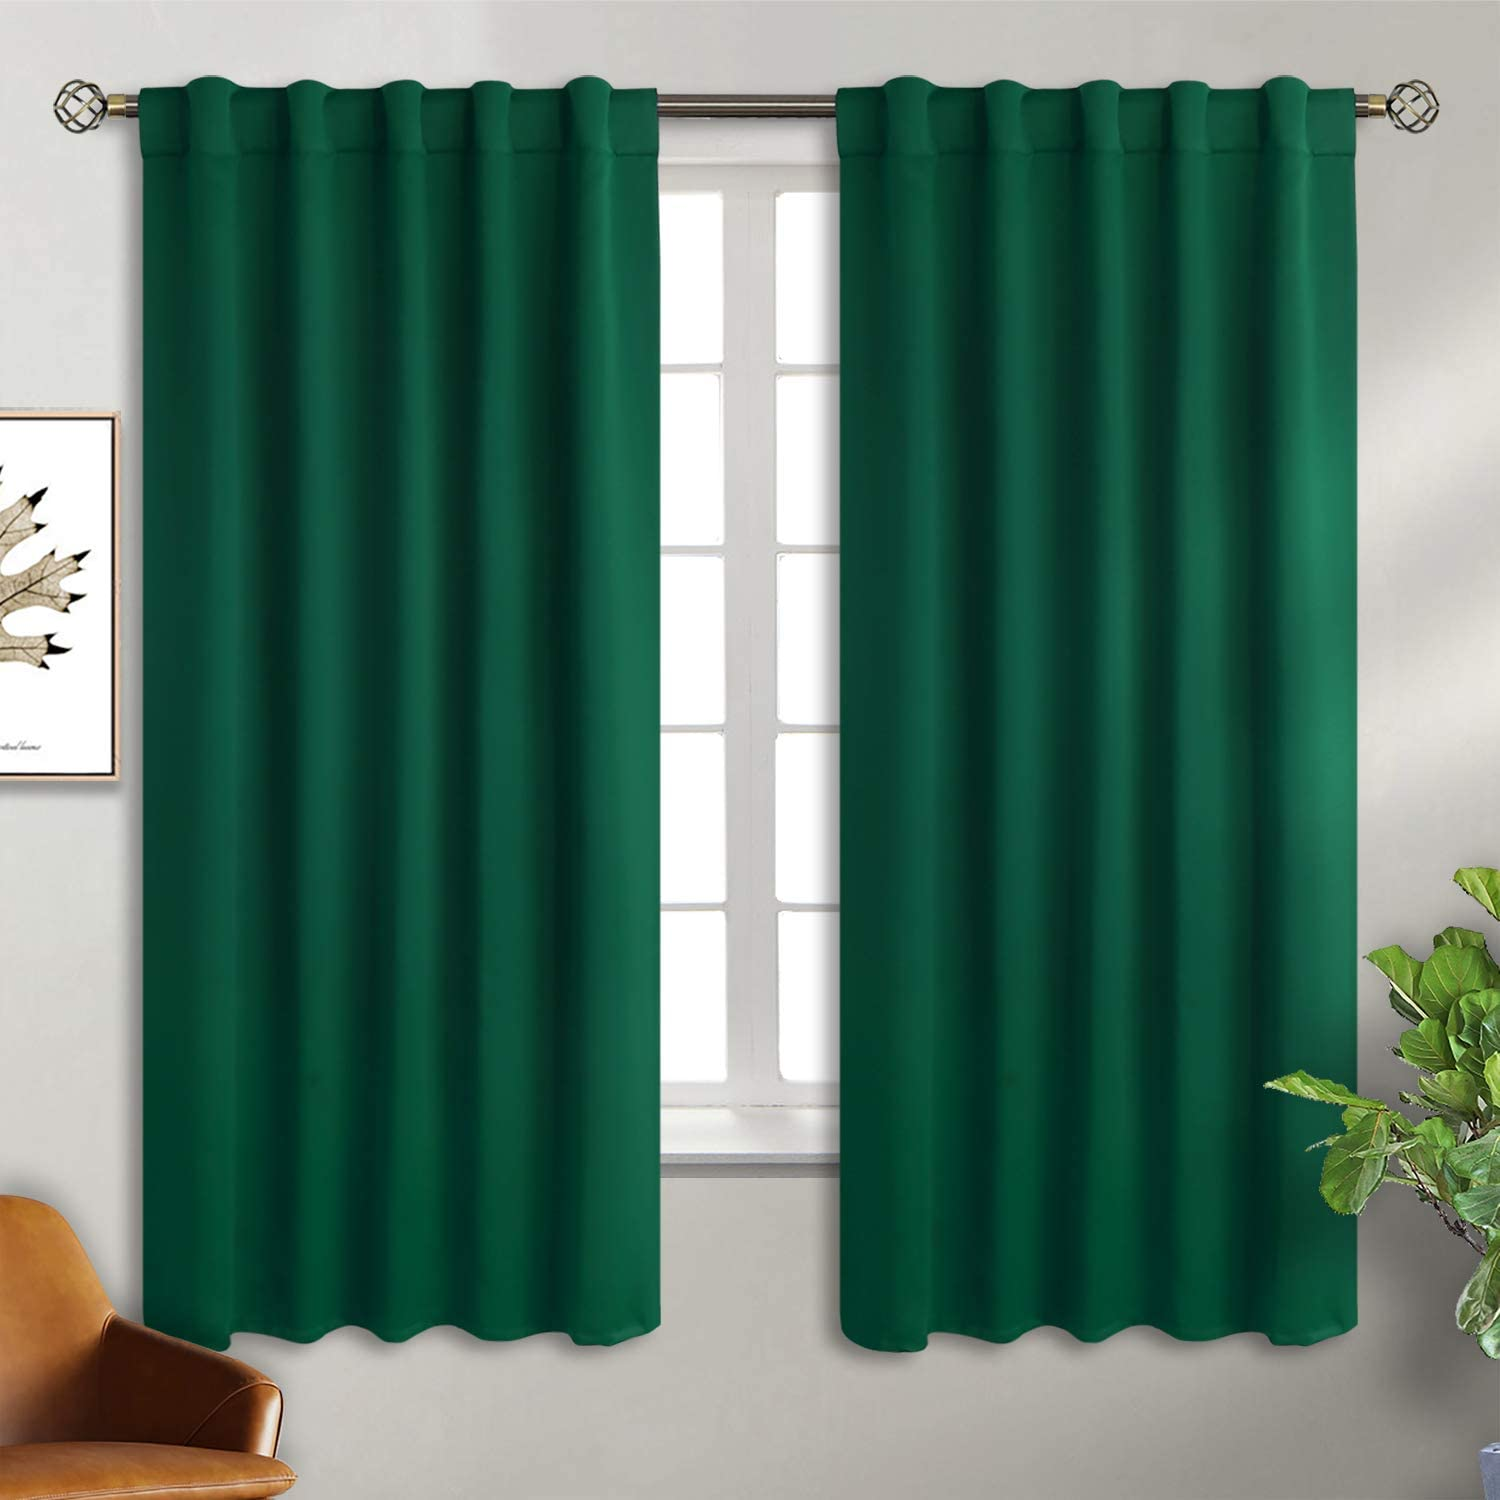 Curtain Blackout Thermal Insulated 2 Privacy Blinds Drapes